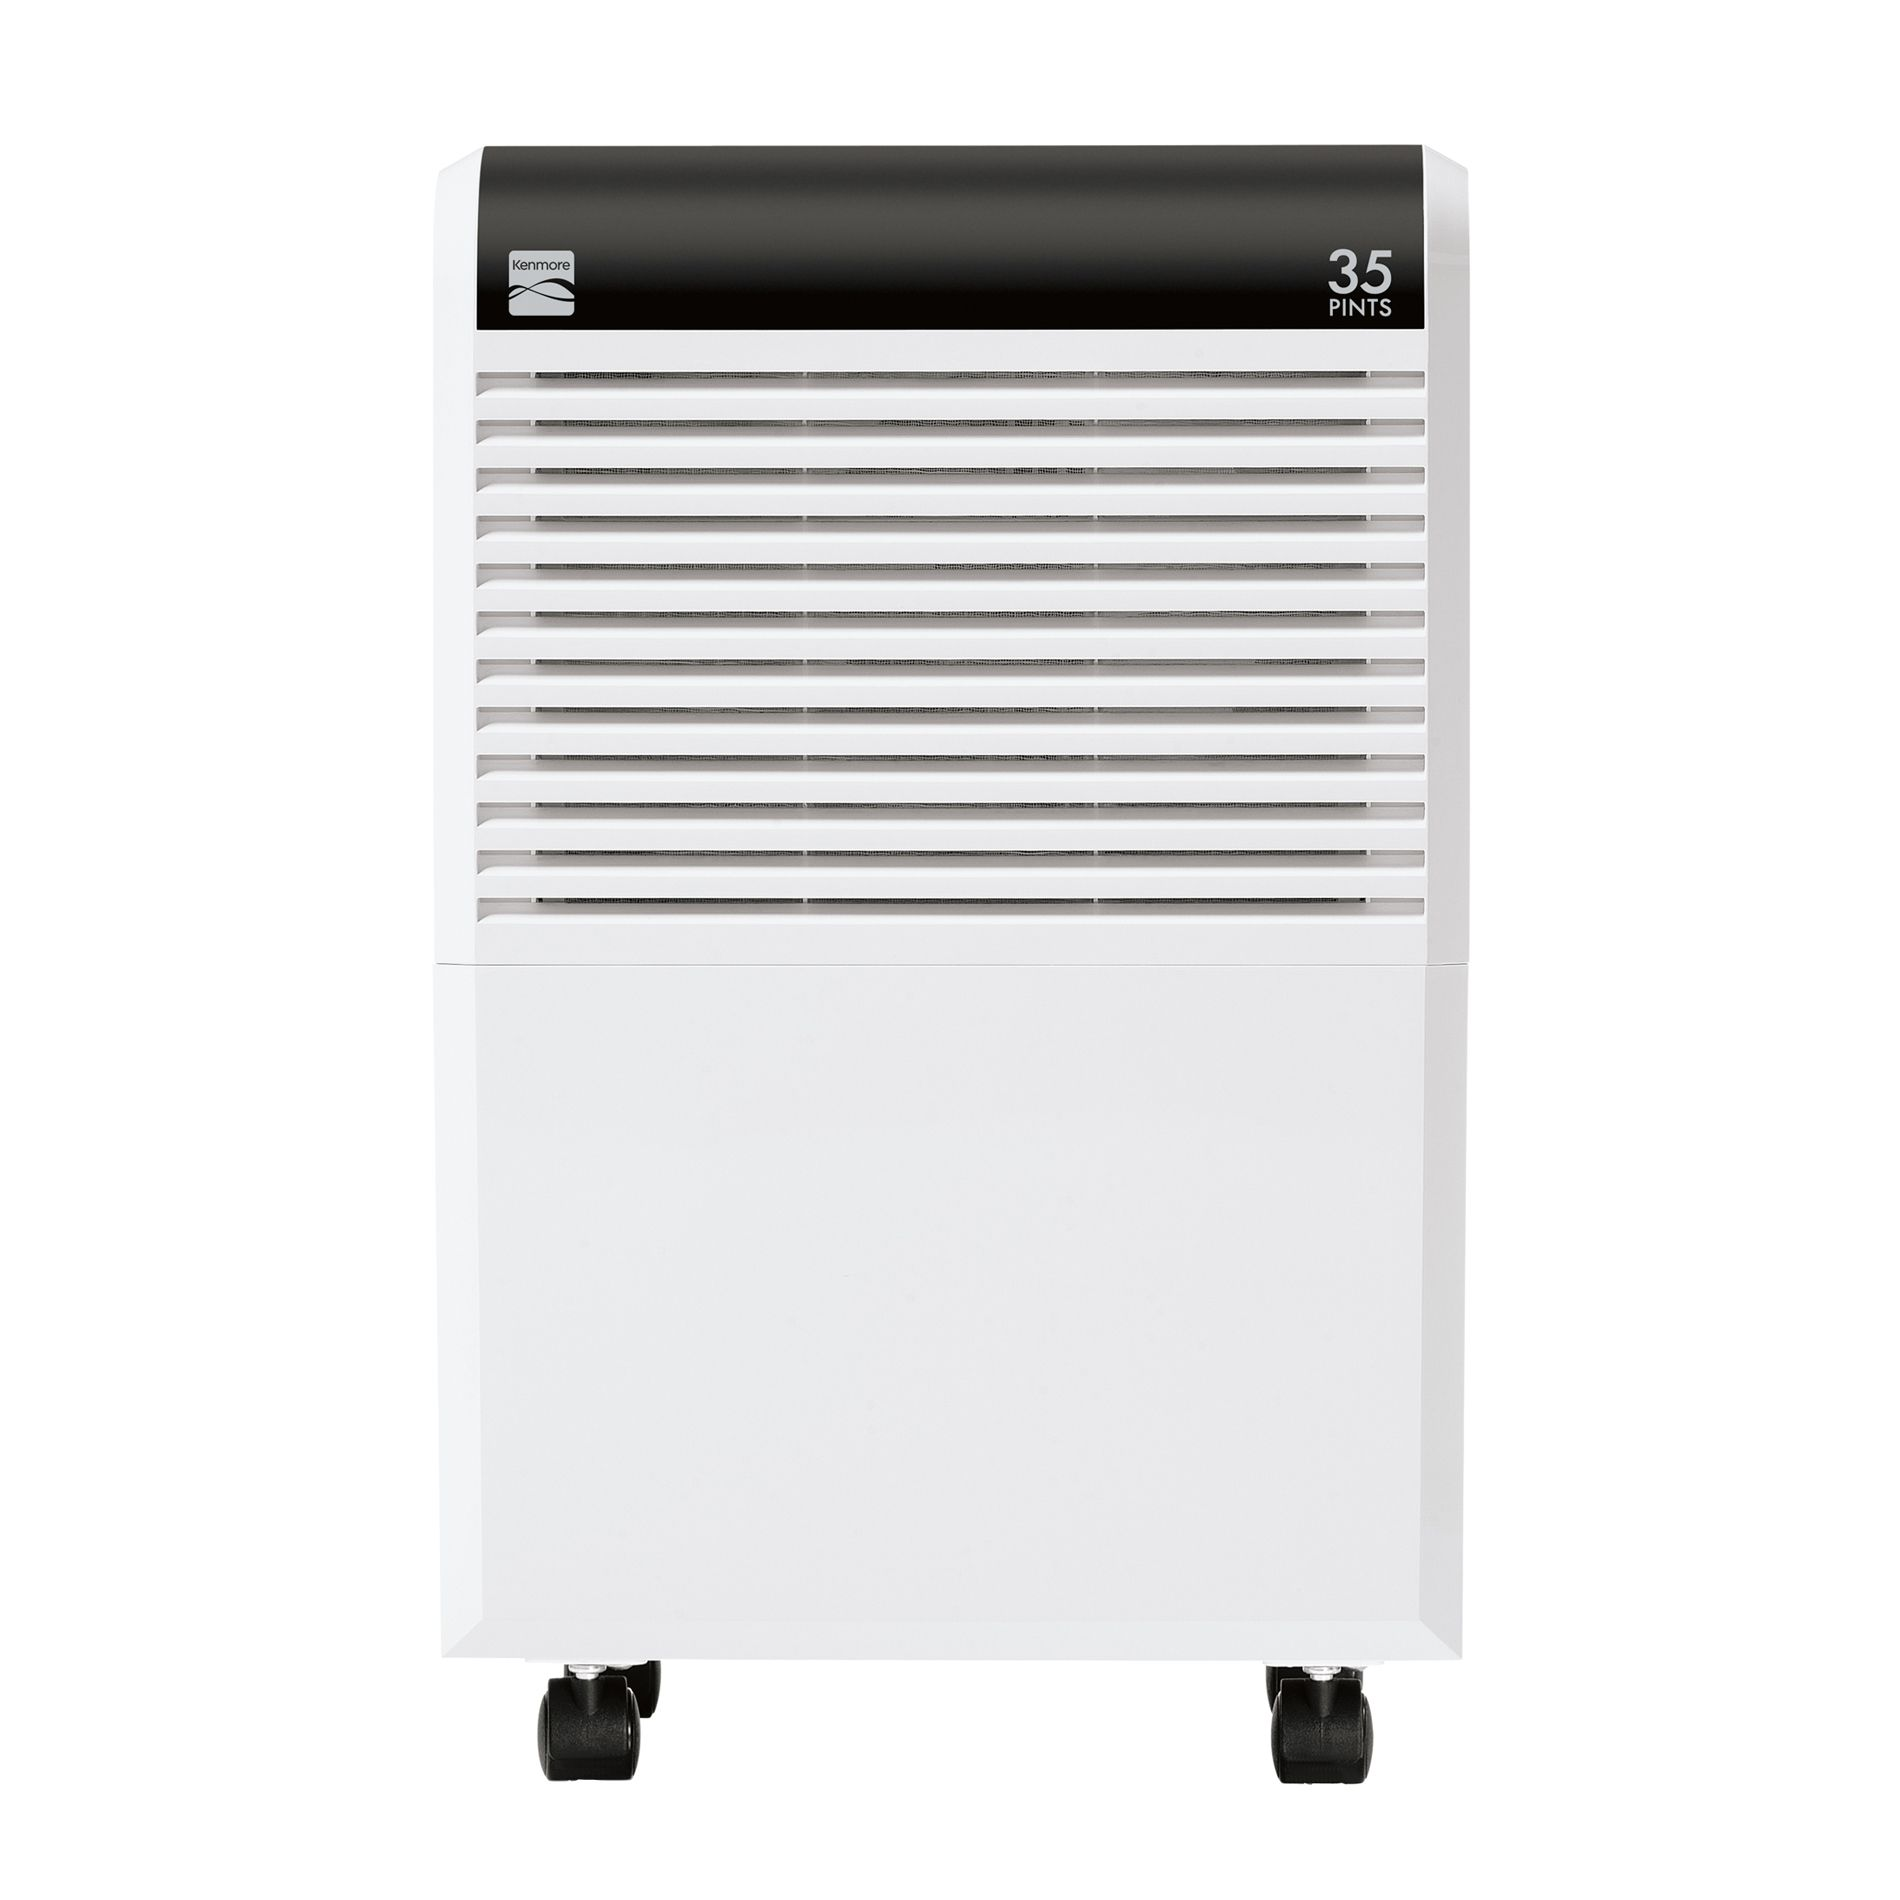 Kenmore 35-pint Dehumidifier with Electronic Controls